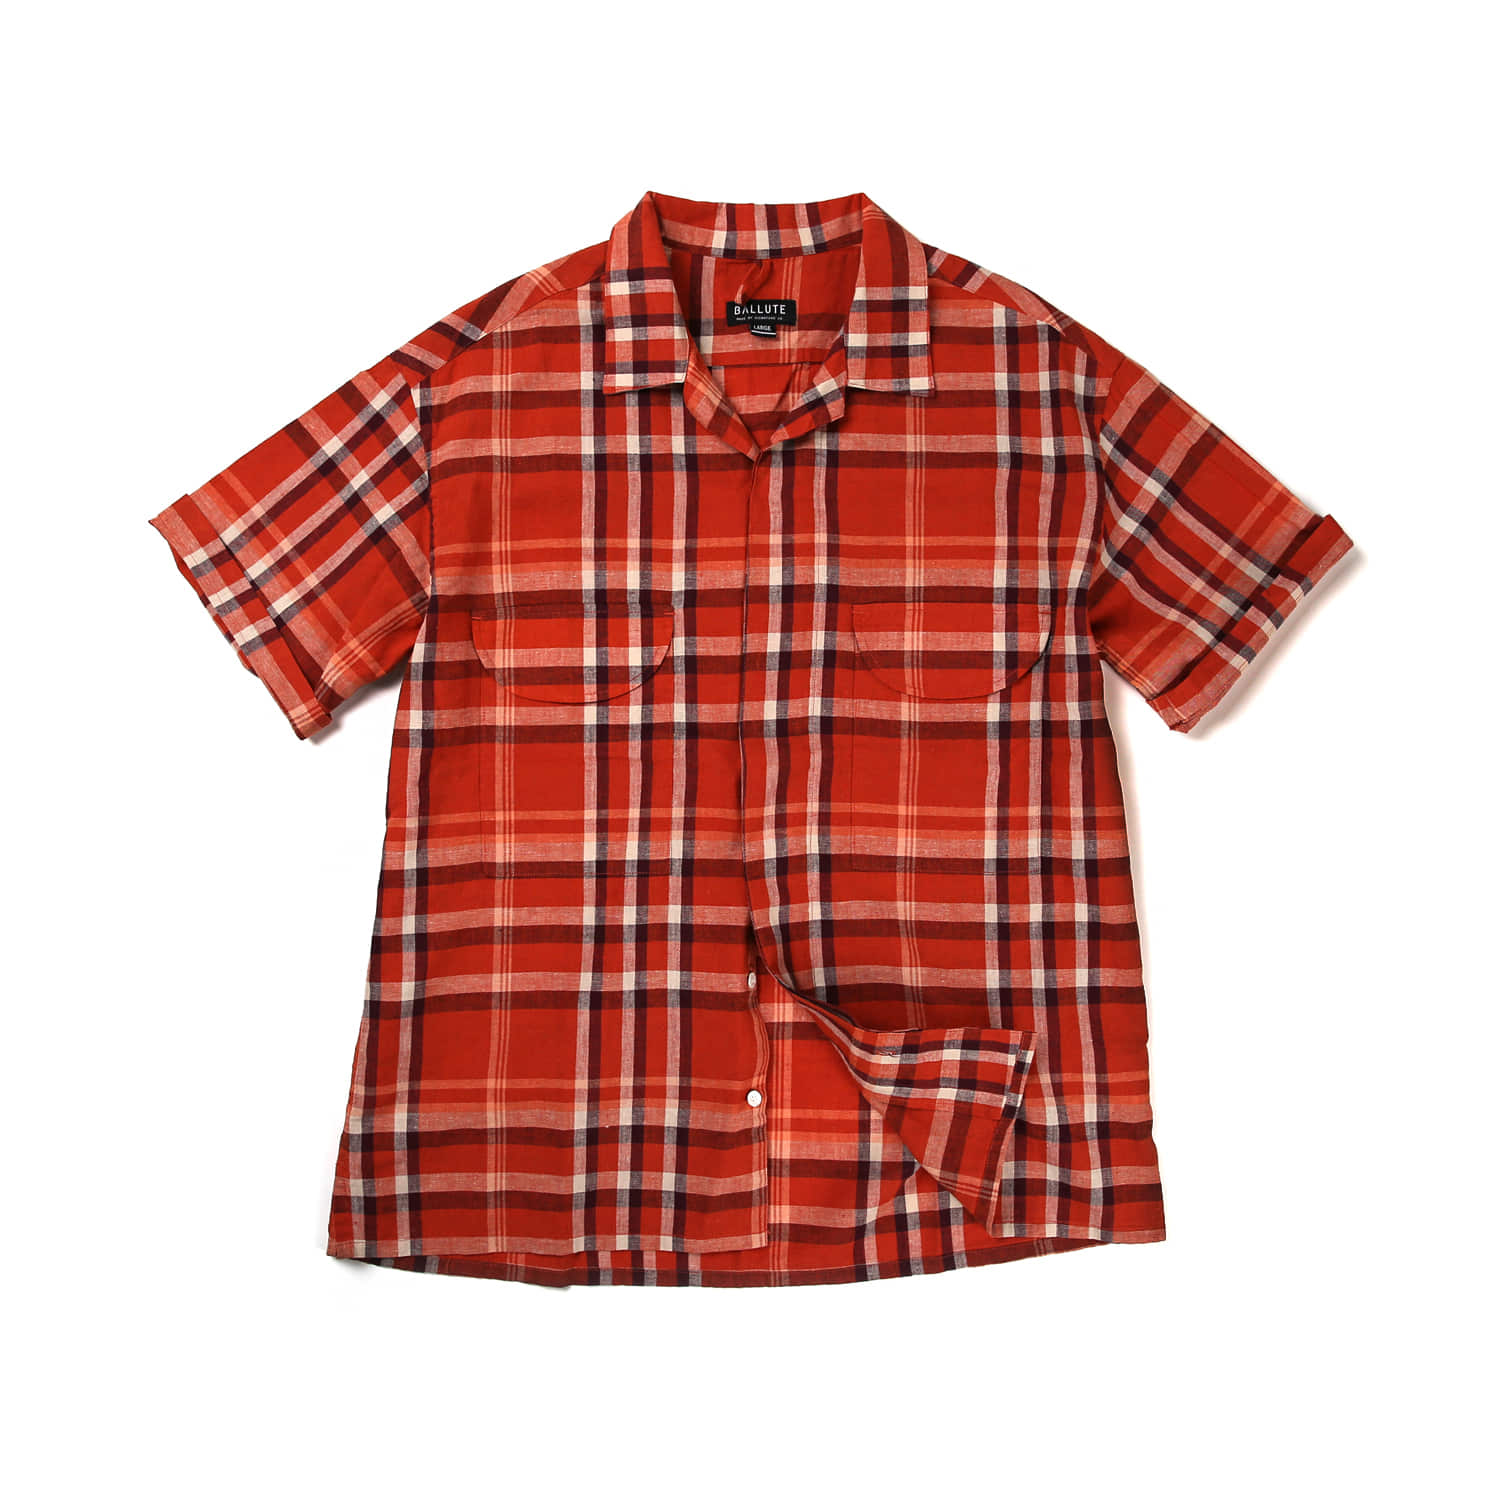 FRENCH EASY HALF SHIRT (ORANGE)